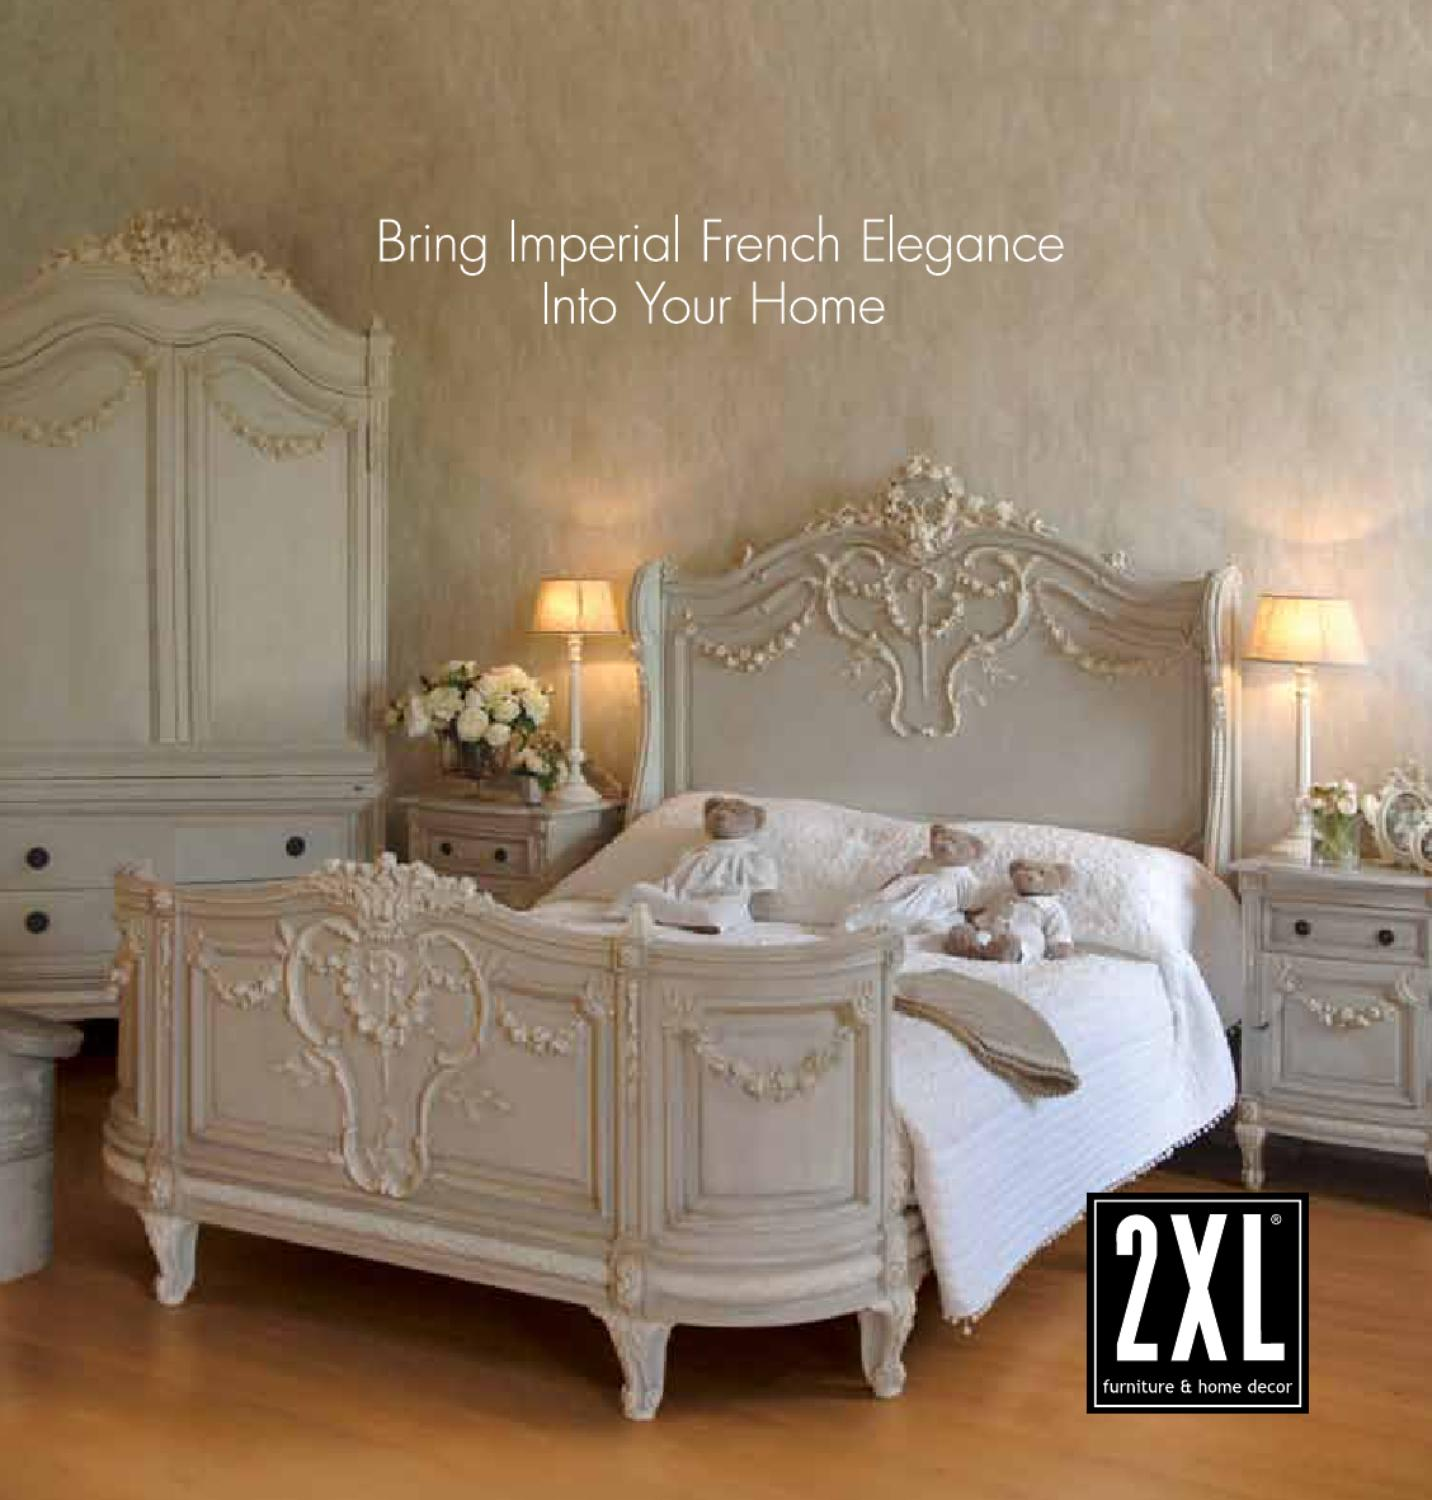 2xl furniture home decor by hot media issuu for Home decor furnishing